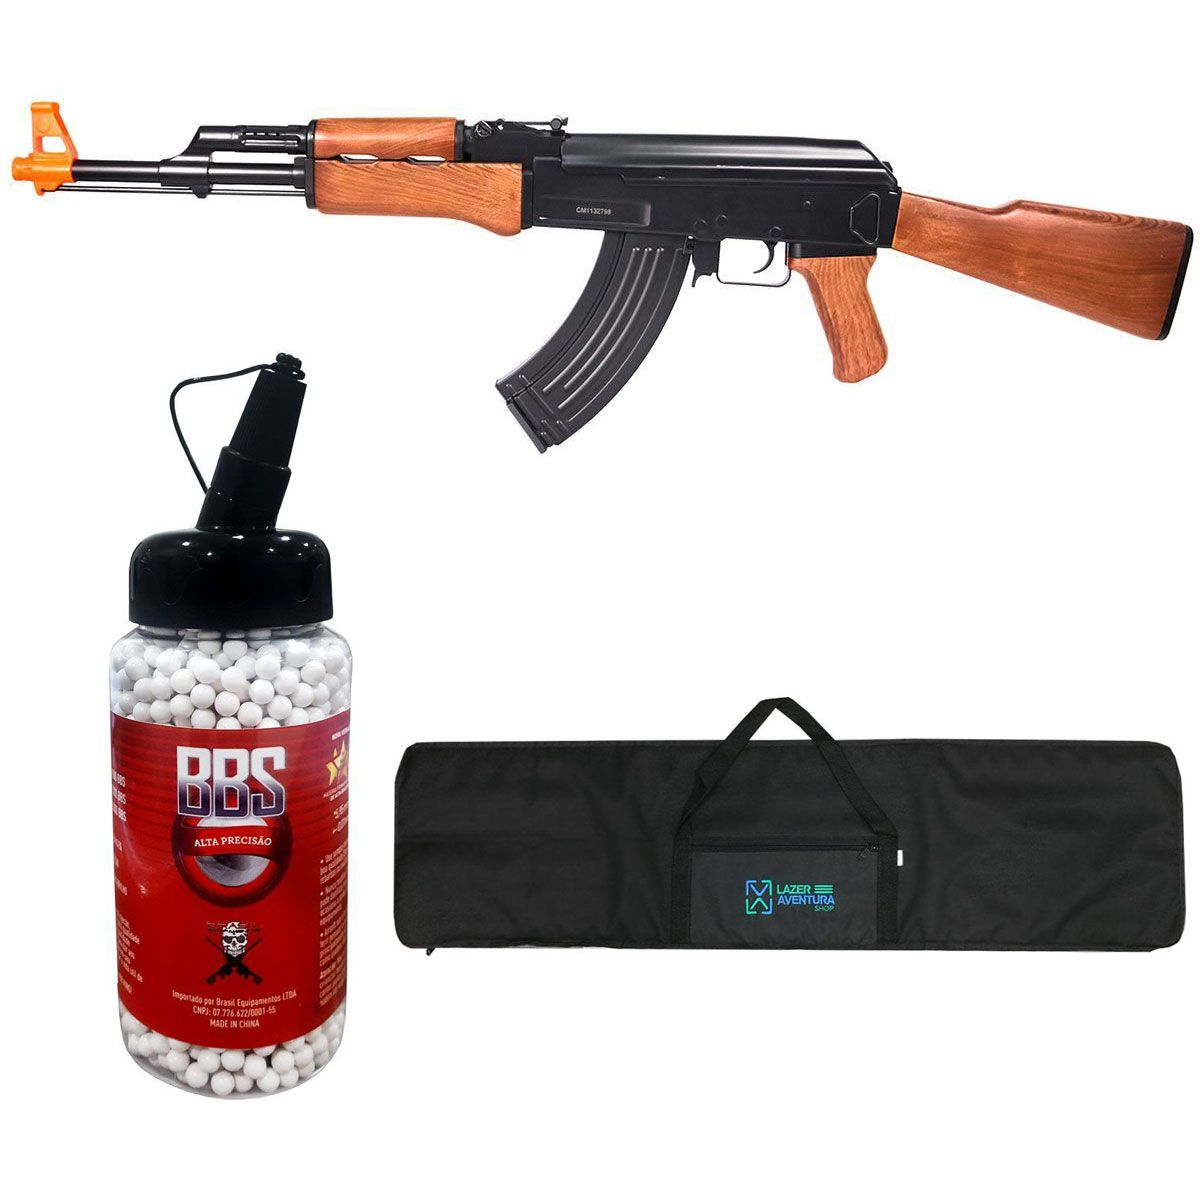 Kit Rifle Cyma AK47 + BB King 0,20g + Capa Lazer e Aventura